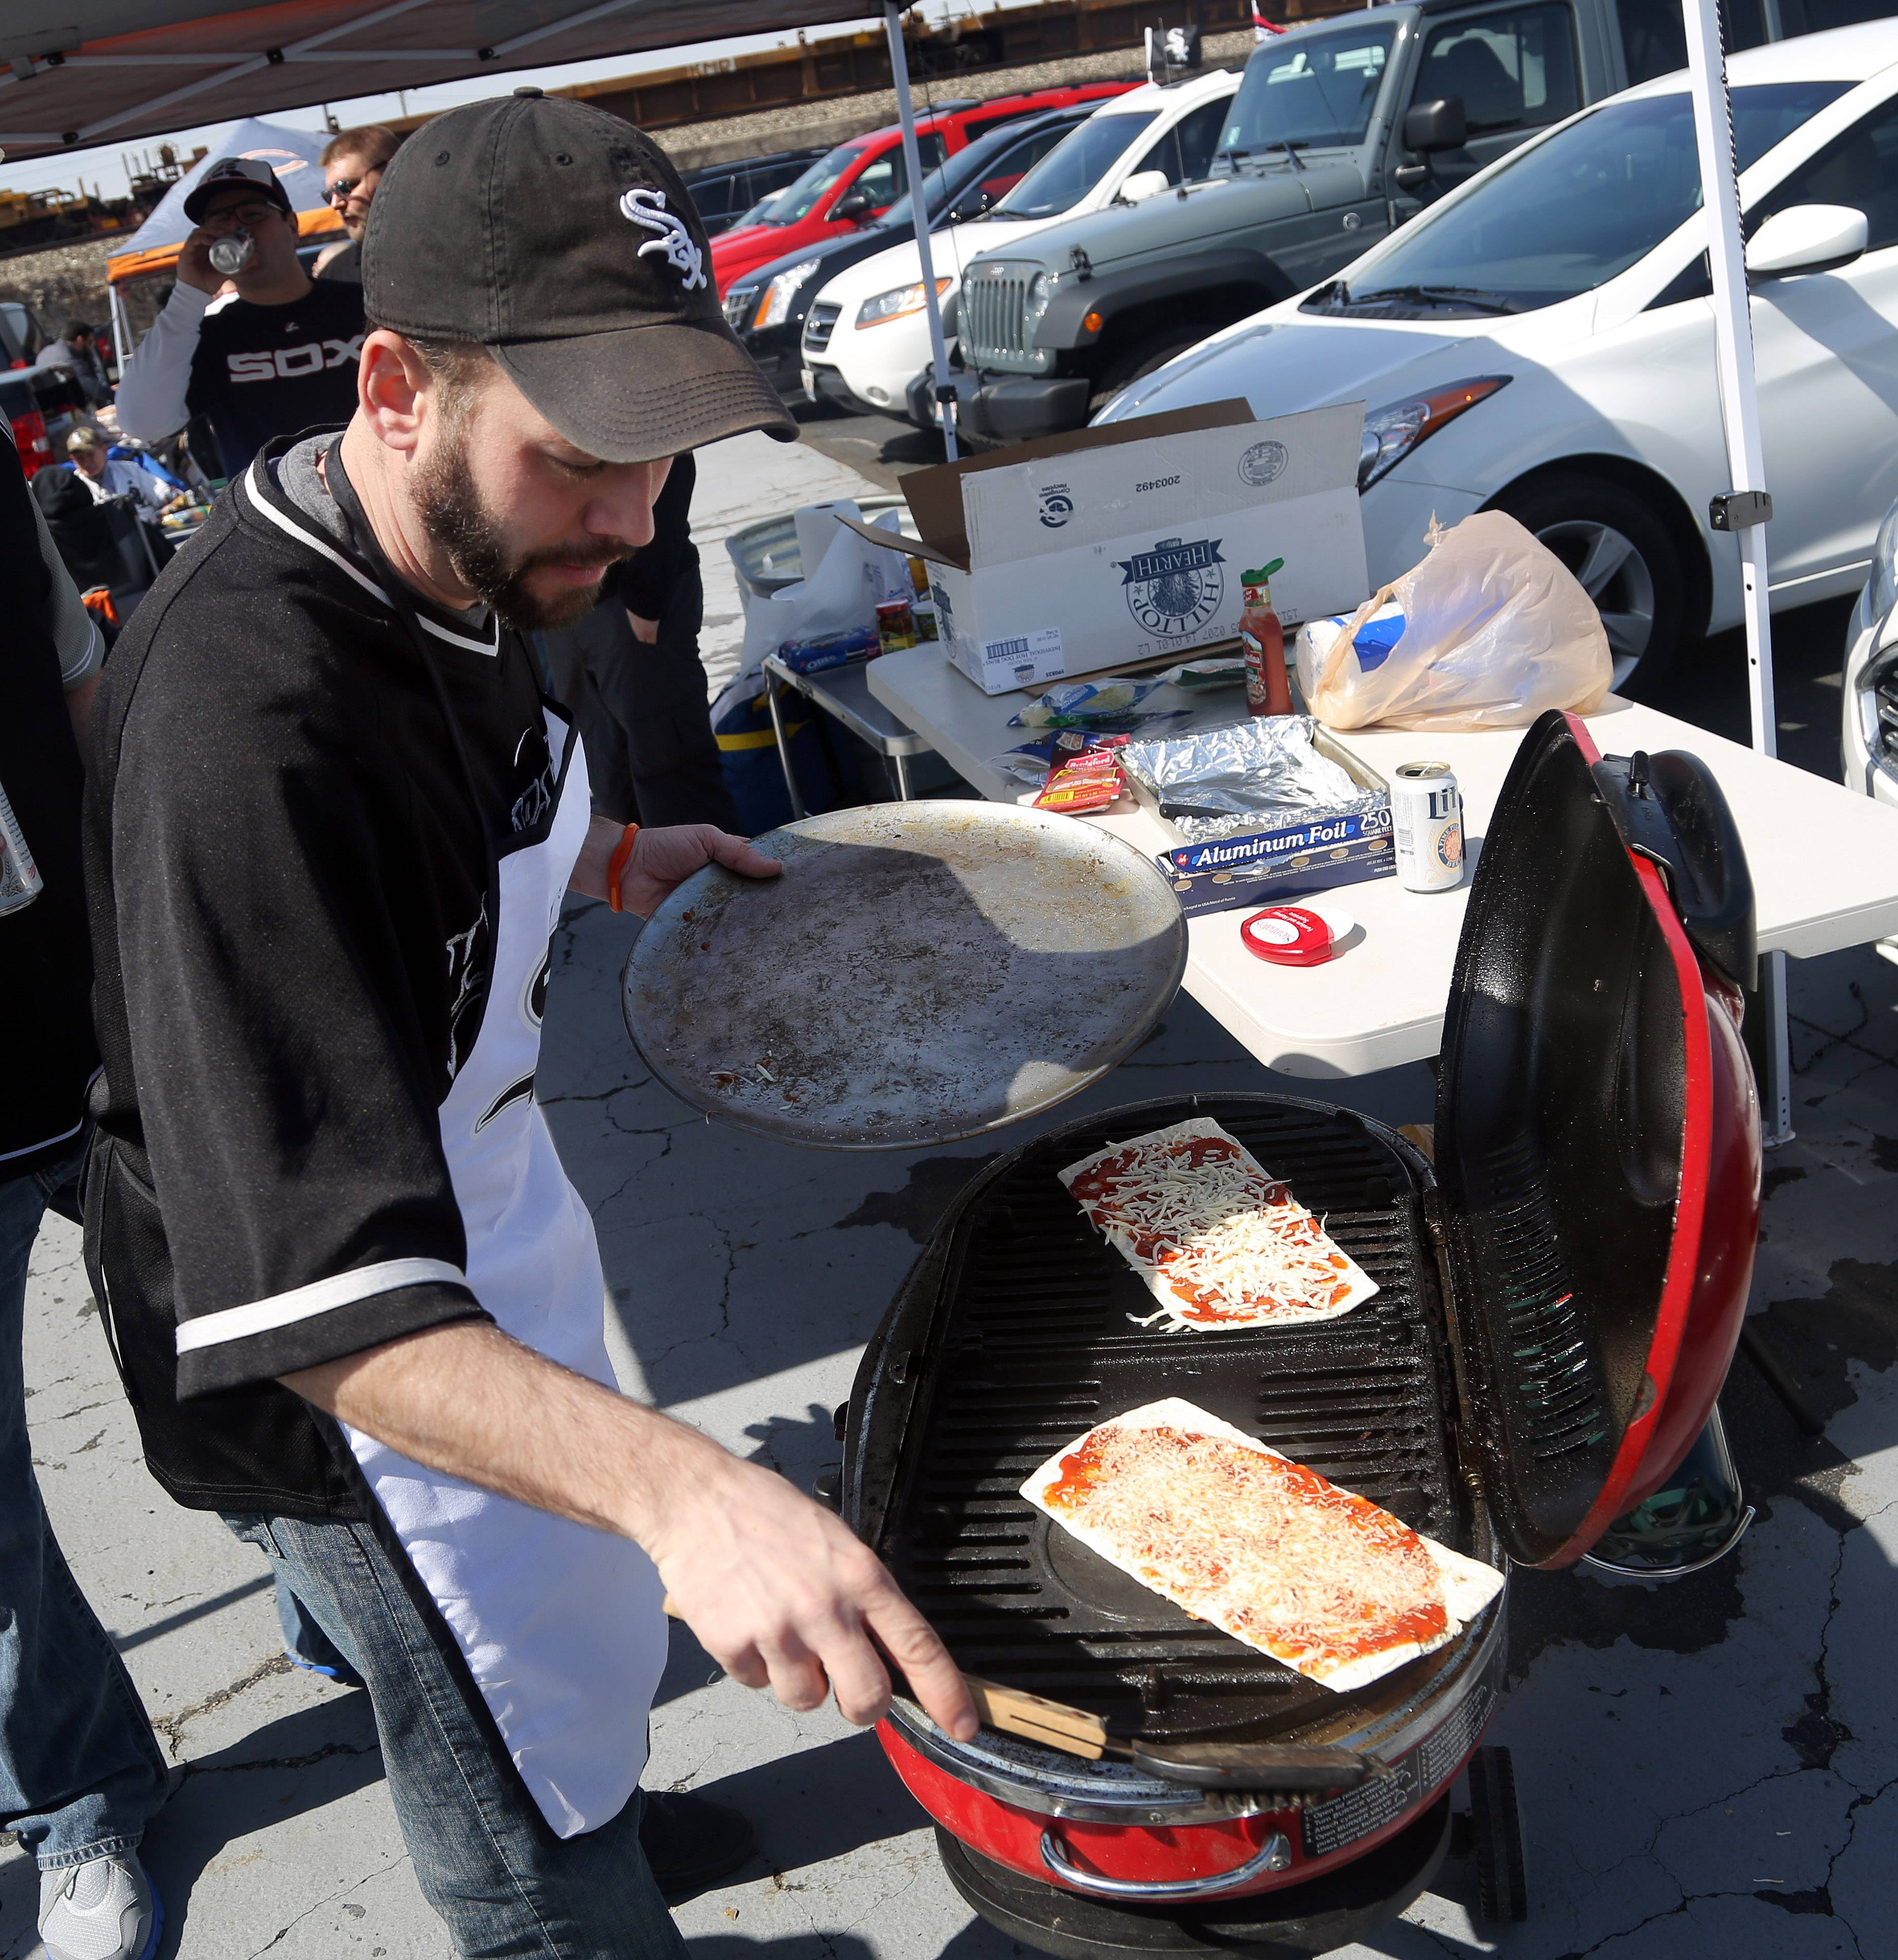 Mike Mele of Mundelein grills flatbread pizza Monday before the White Sox' first game of the season at U.S. Cellular Field.